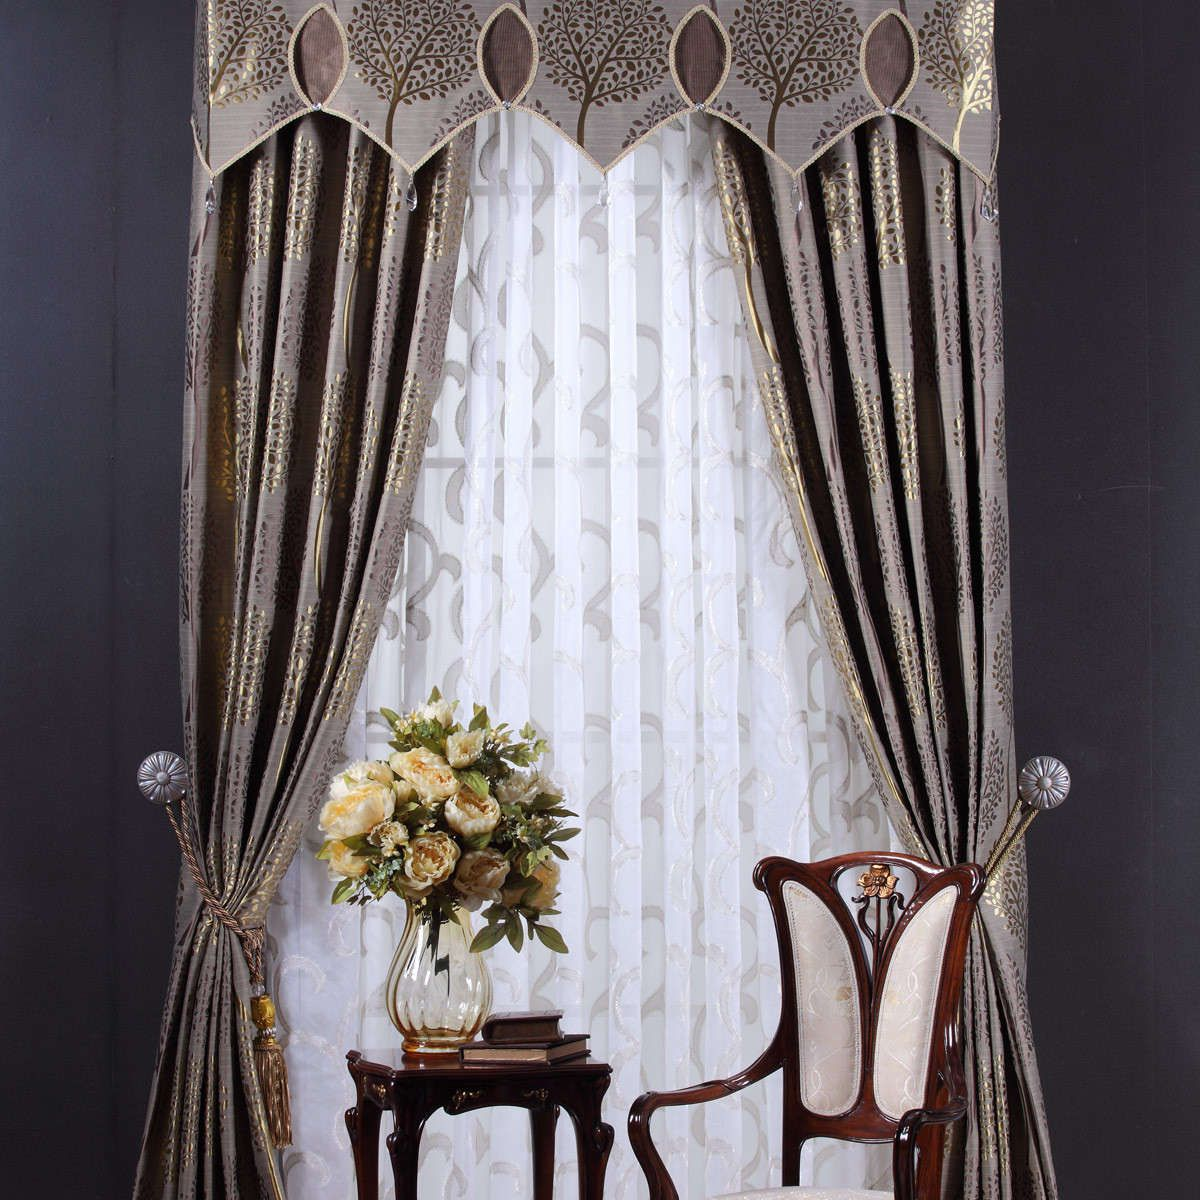 Best Upscale Drapes Mural Pattern Luxury Bedroom Drapery 640 x 480